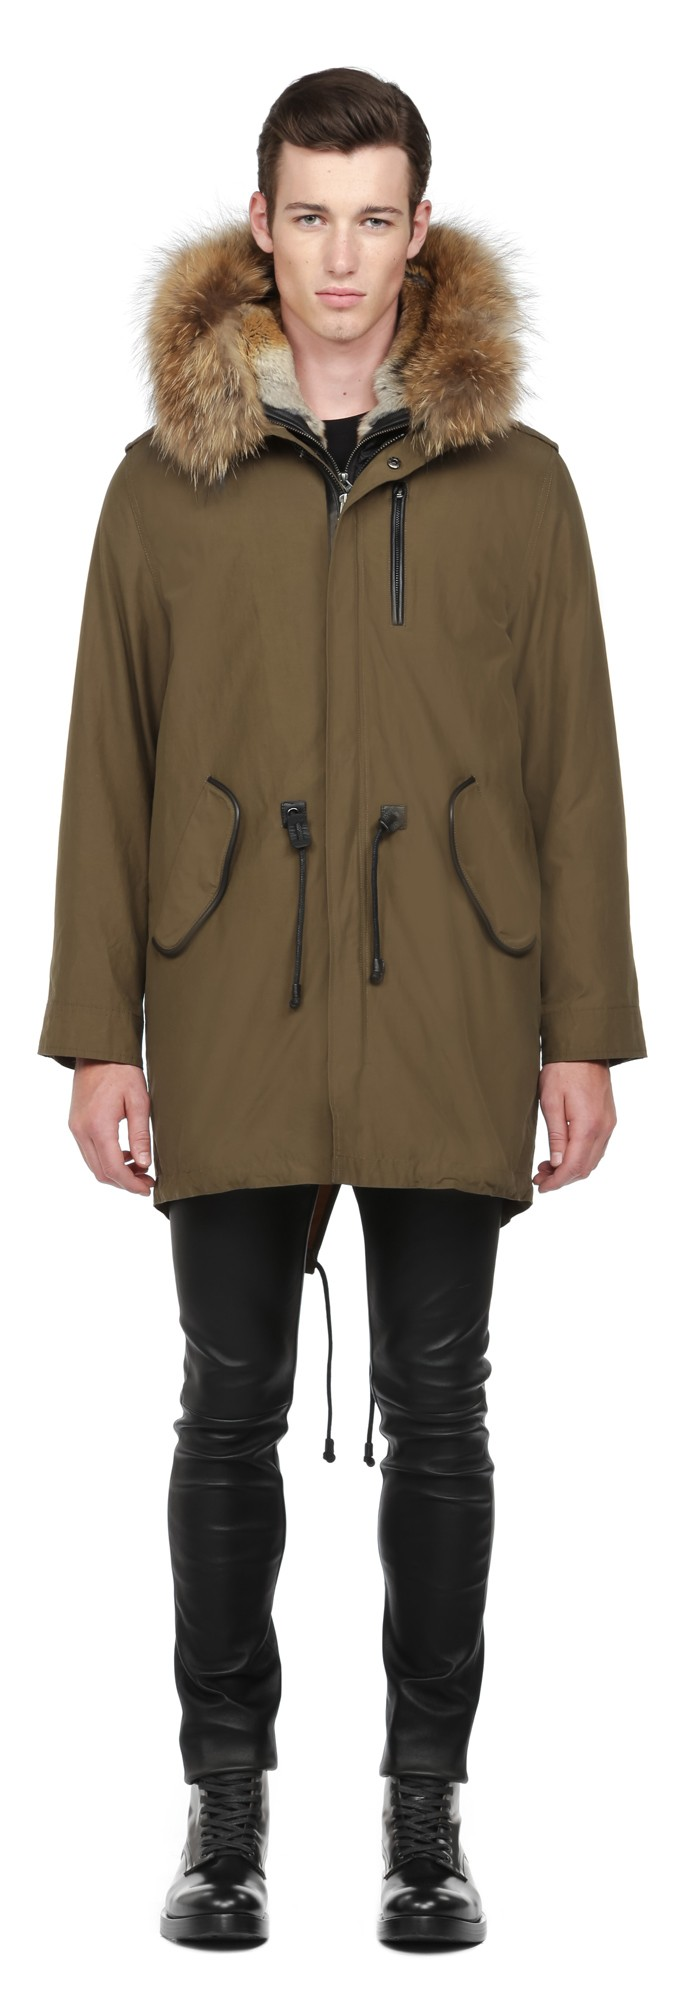 Army Waxed Cotton Parka Lined With Fur Mackage Men